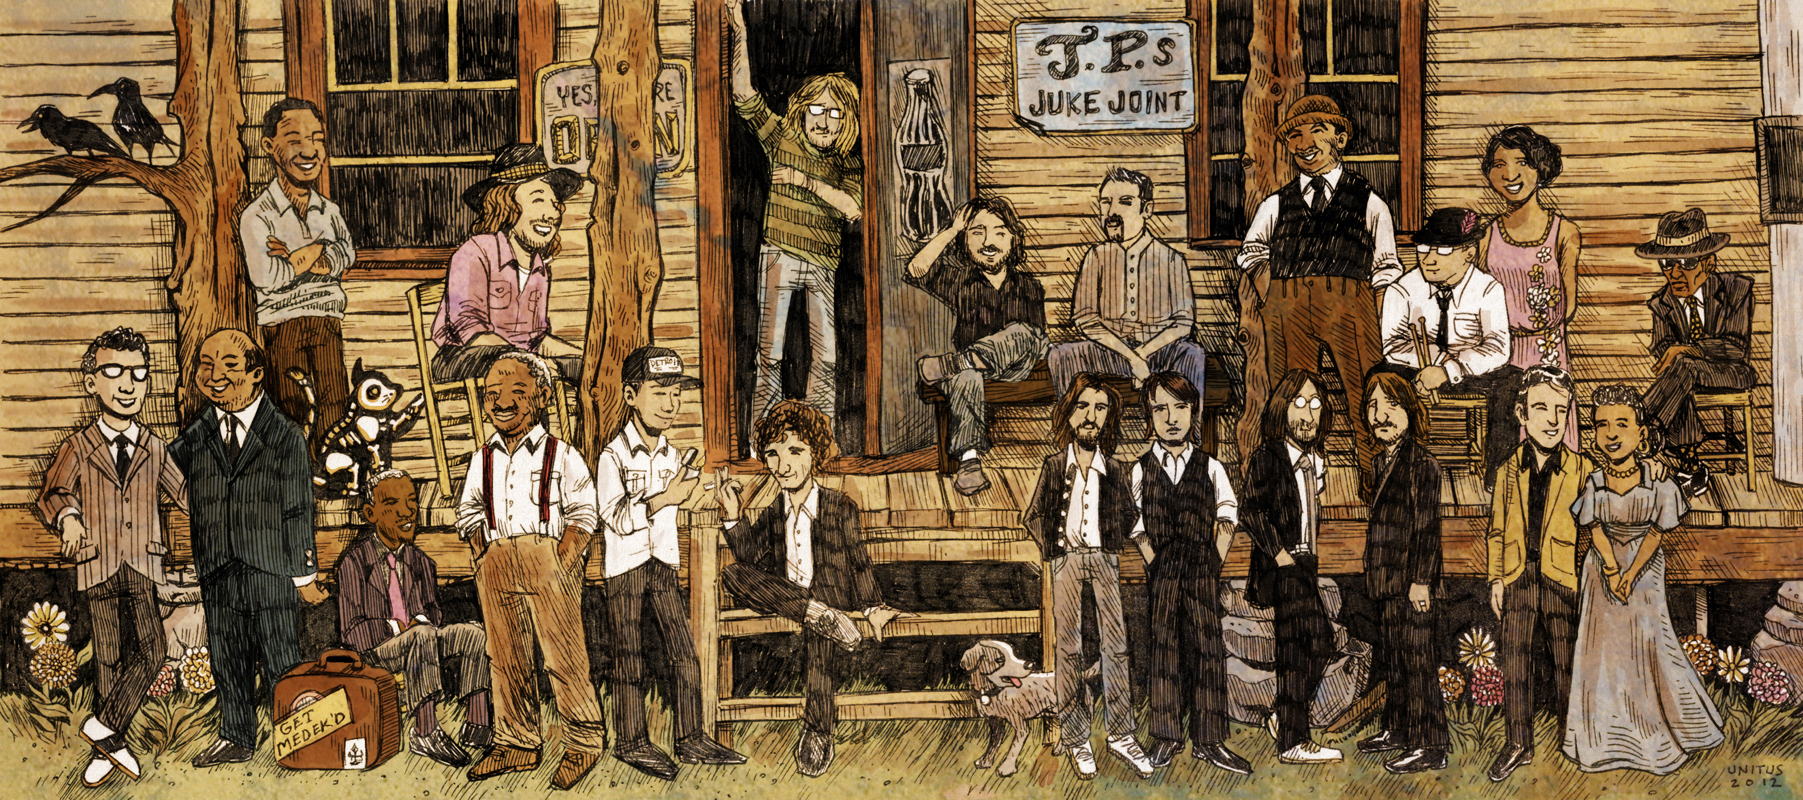 JIMMI & THE BAND OF SOULS ILLUSTRATION